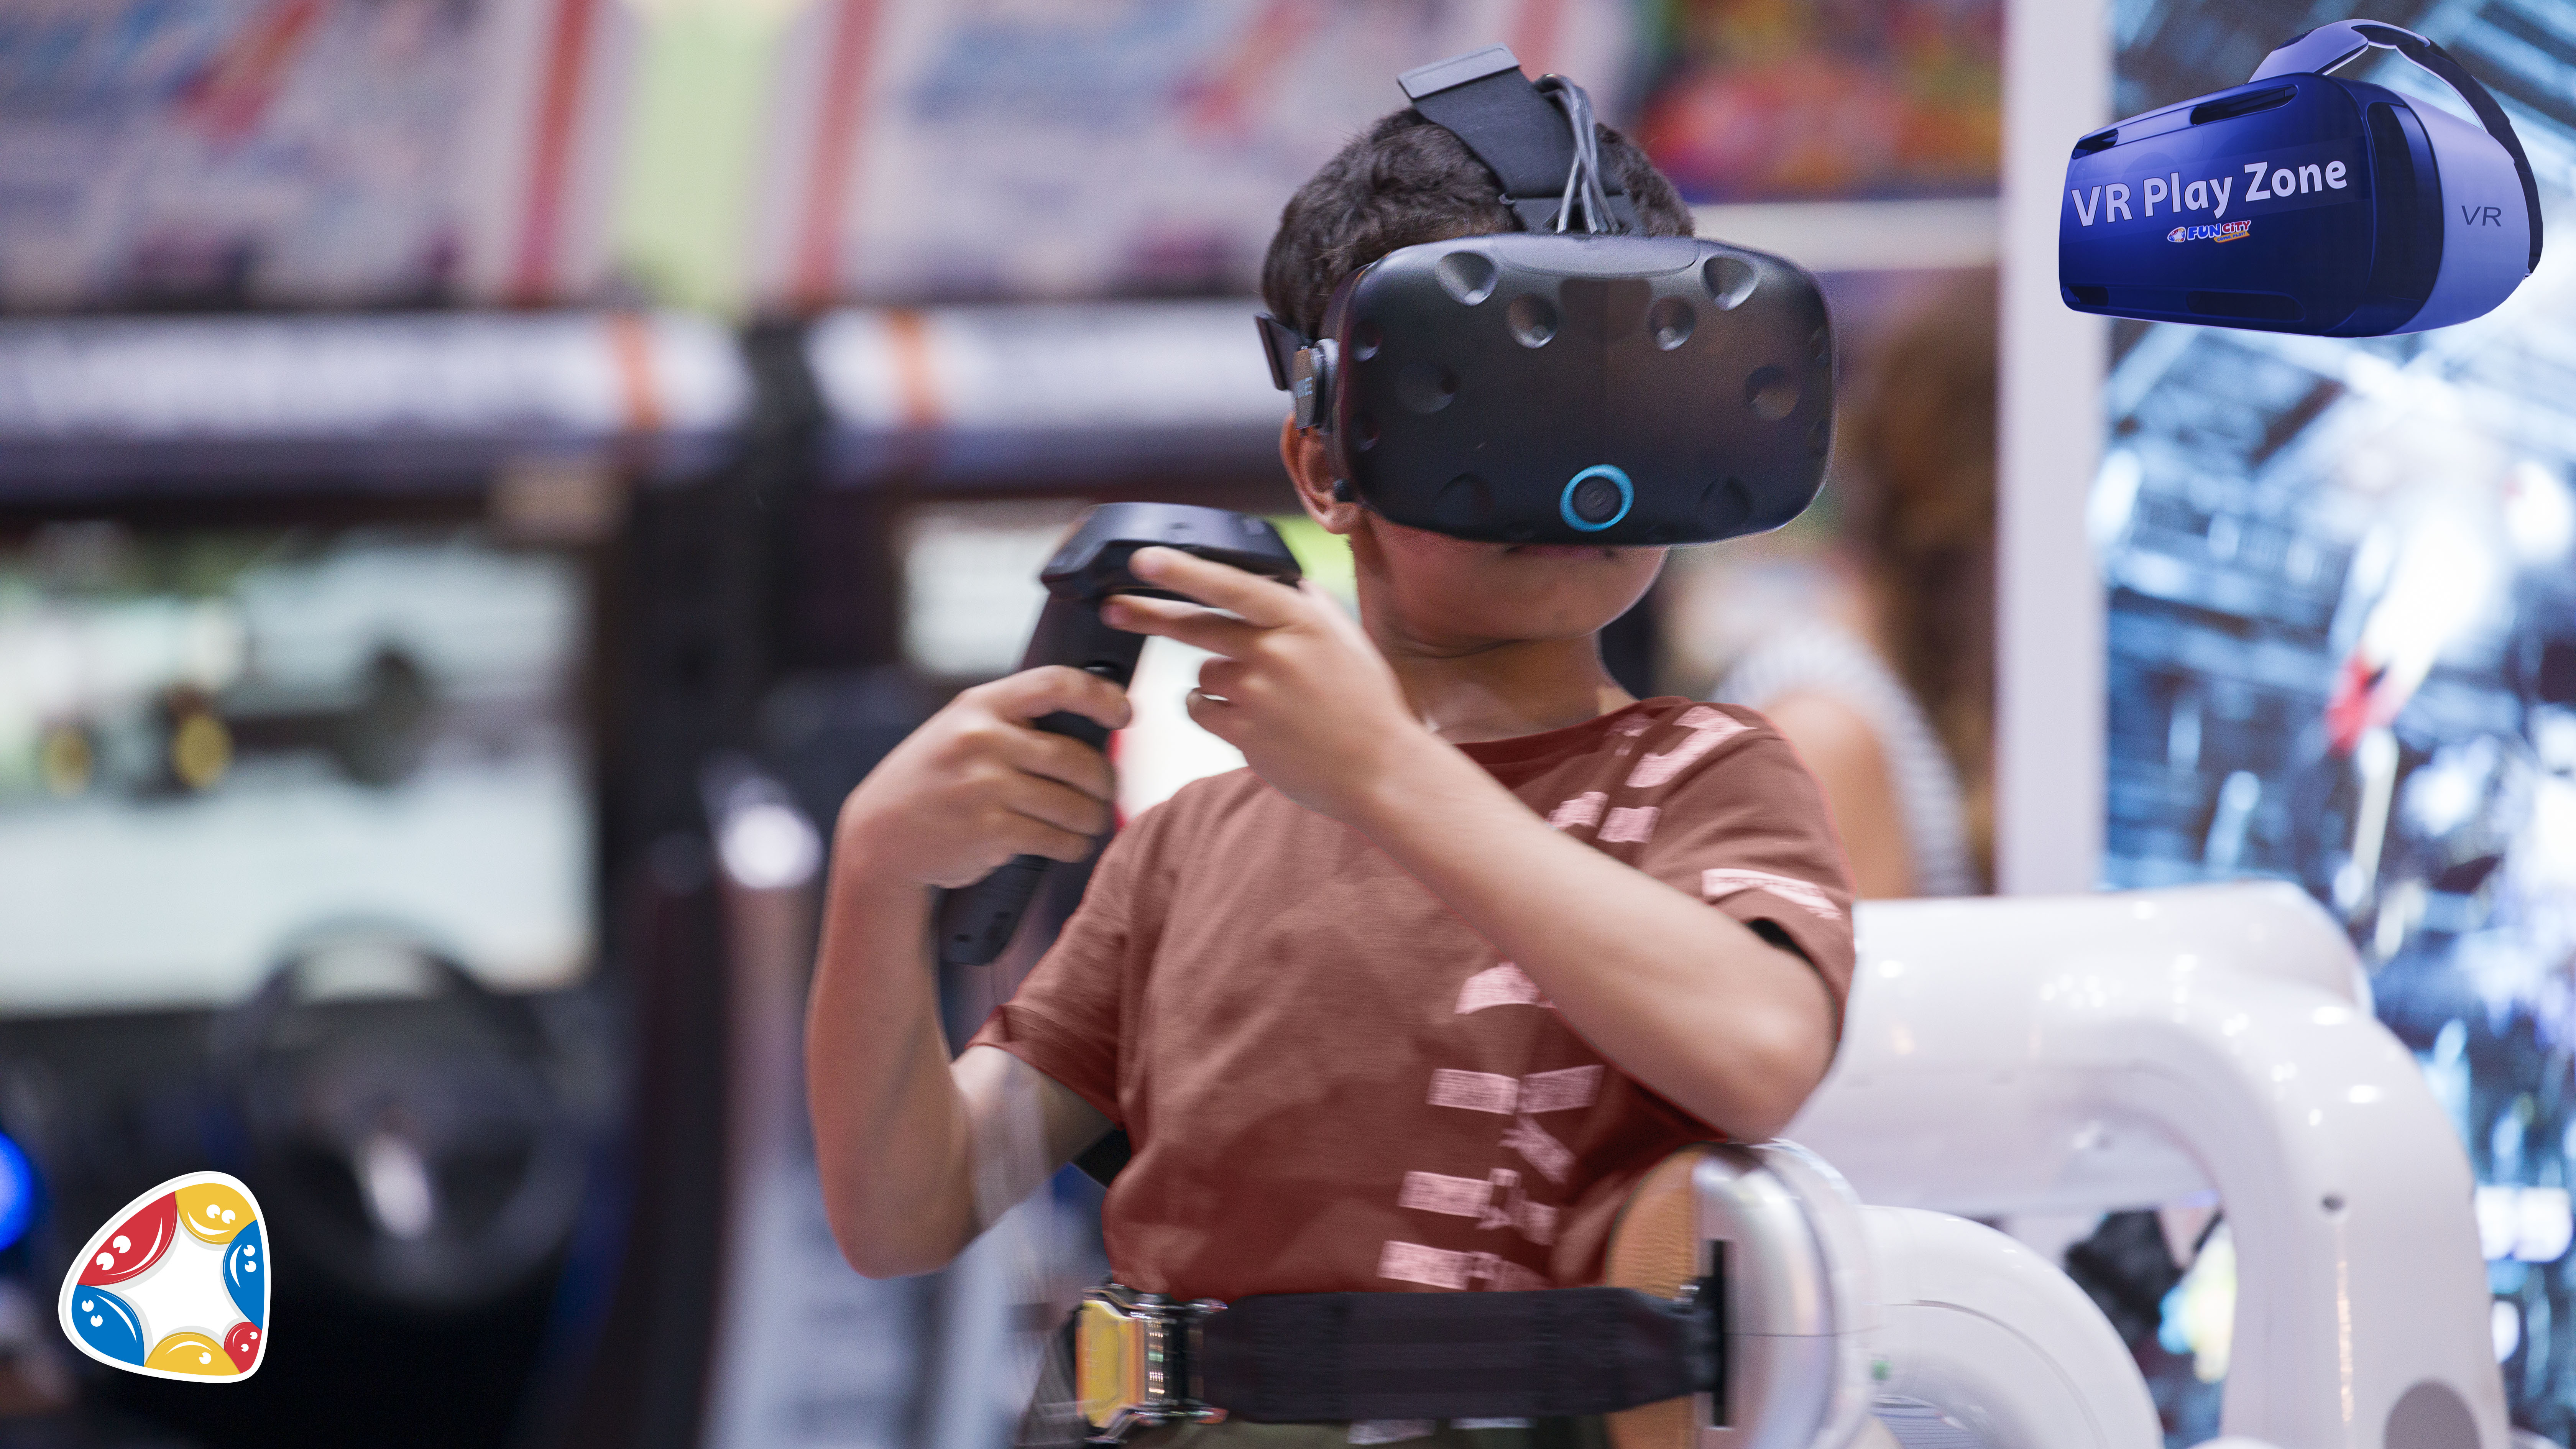 funcity city center doha virtual reality games